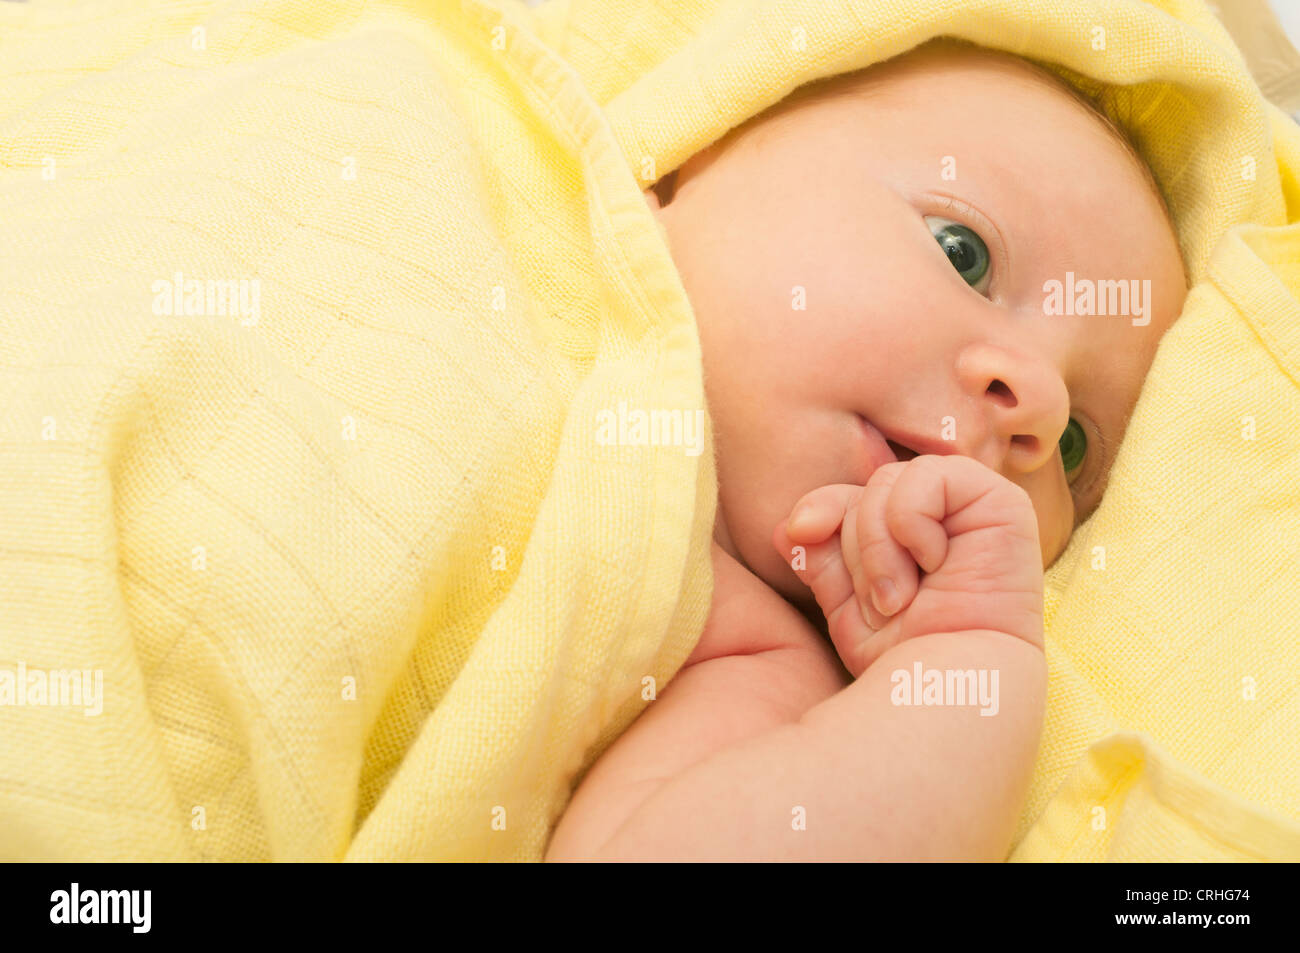 Newborn Baby in the Bed under Yellow Blanket - Stock Image